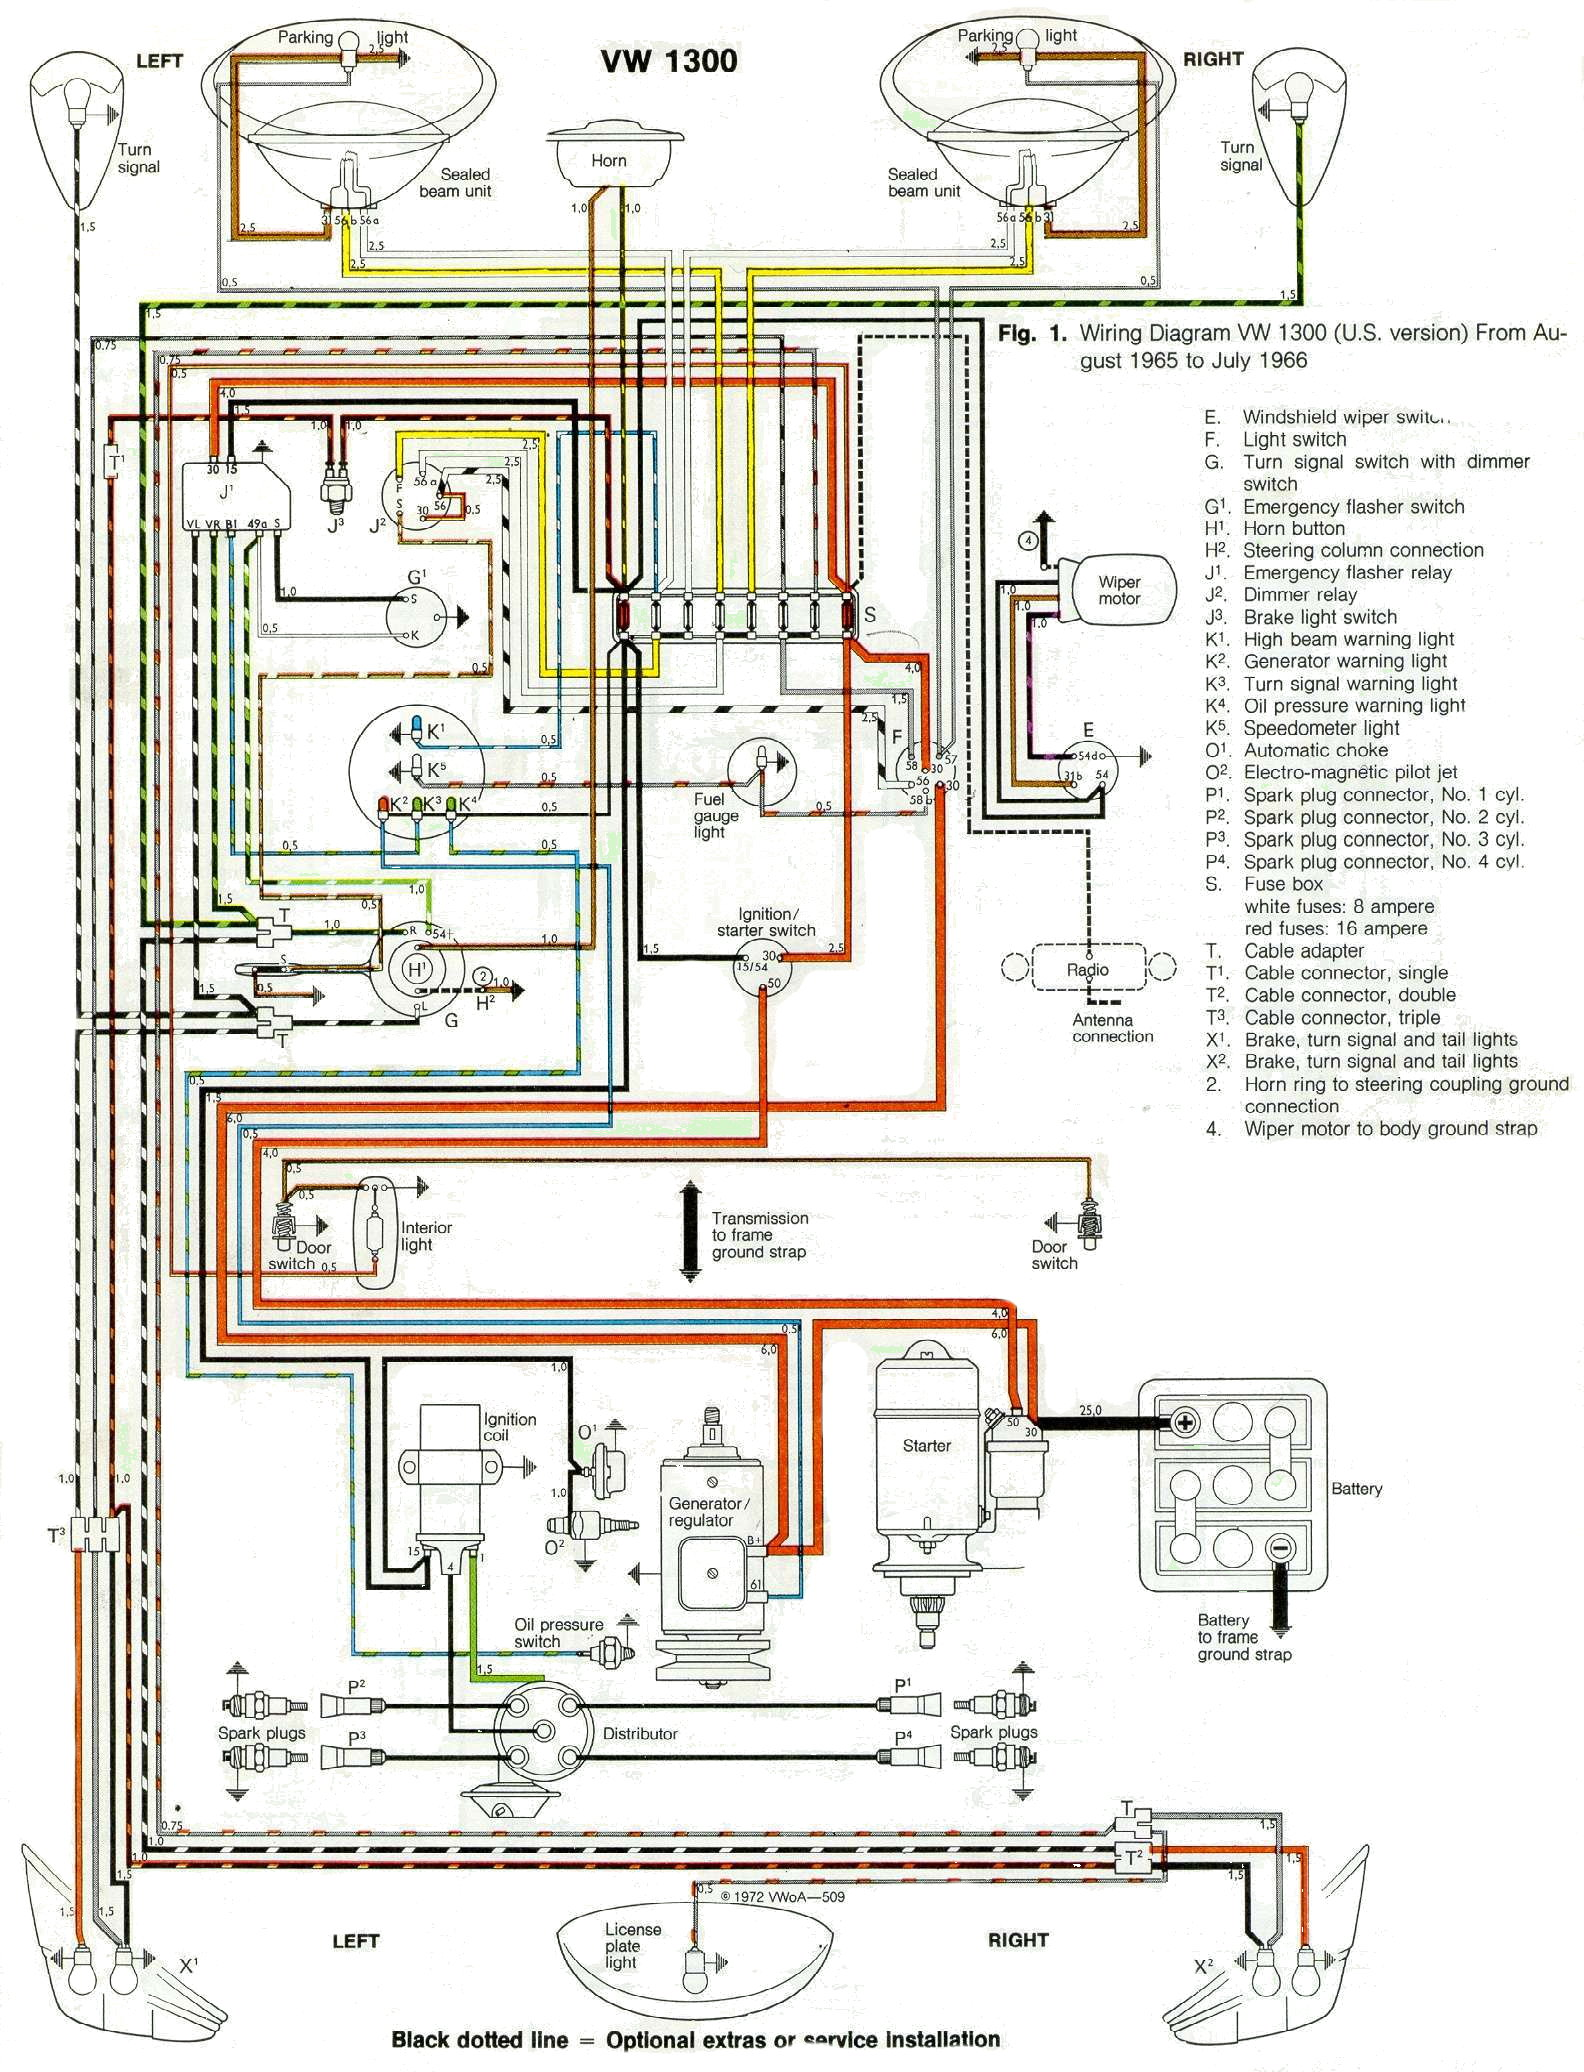 1966 Wiring 1966 wiring diagram vw bug wiring diagram at n-0.co